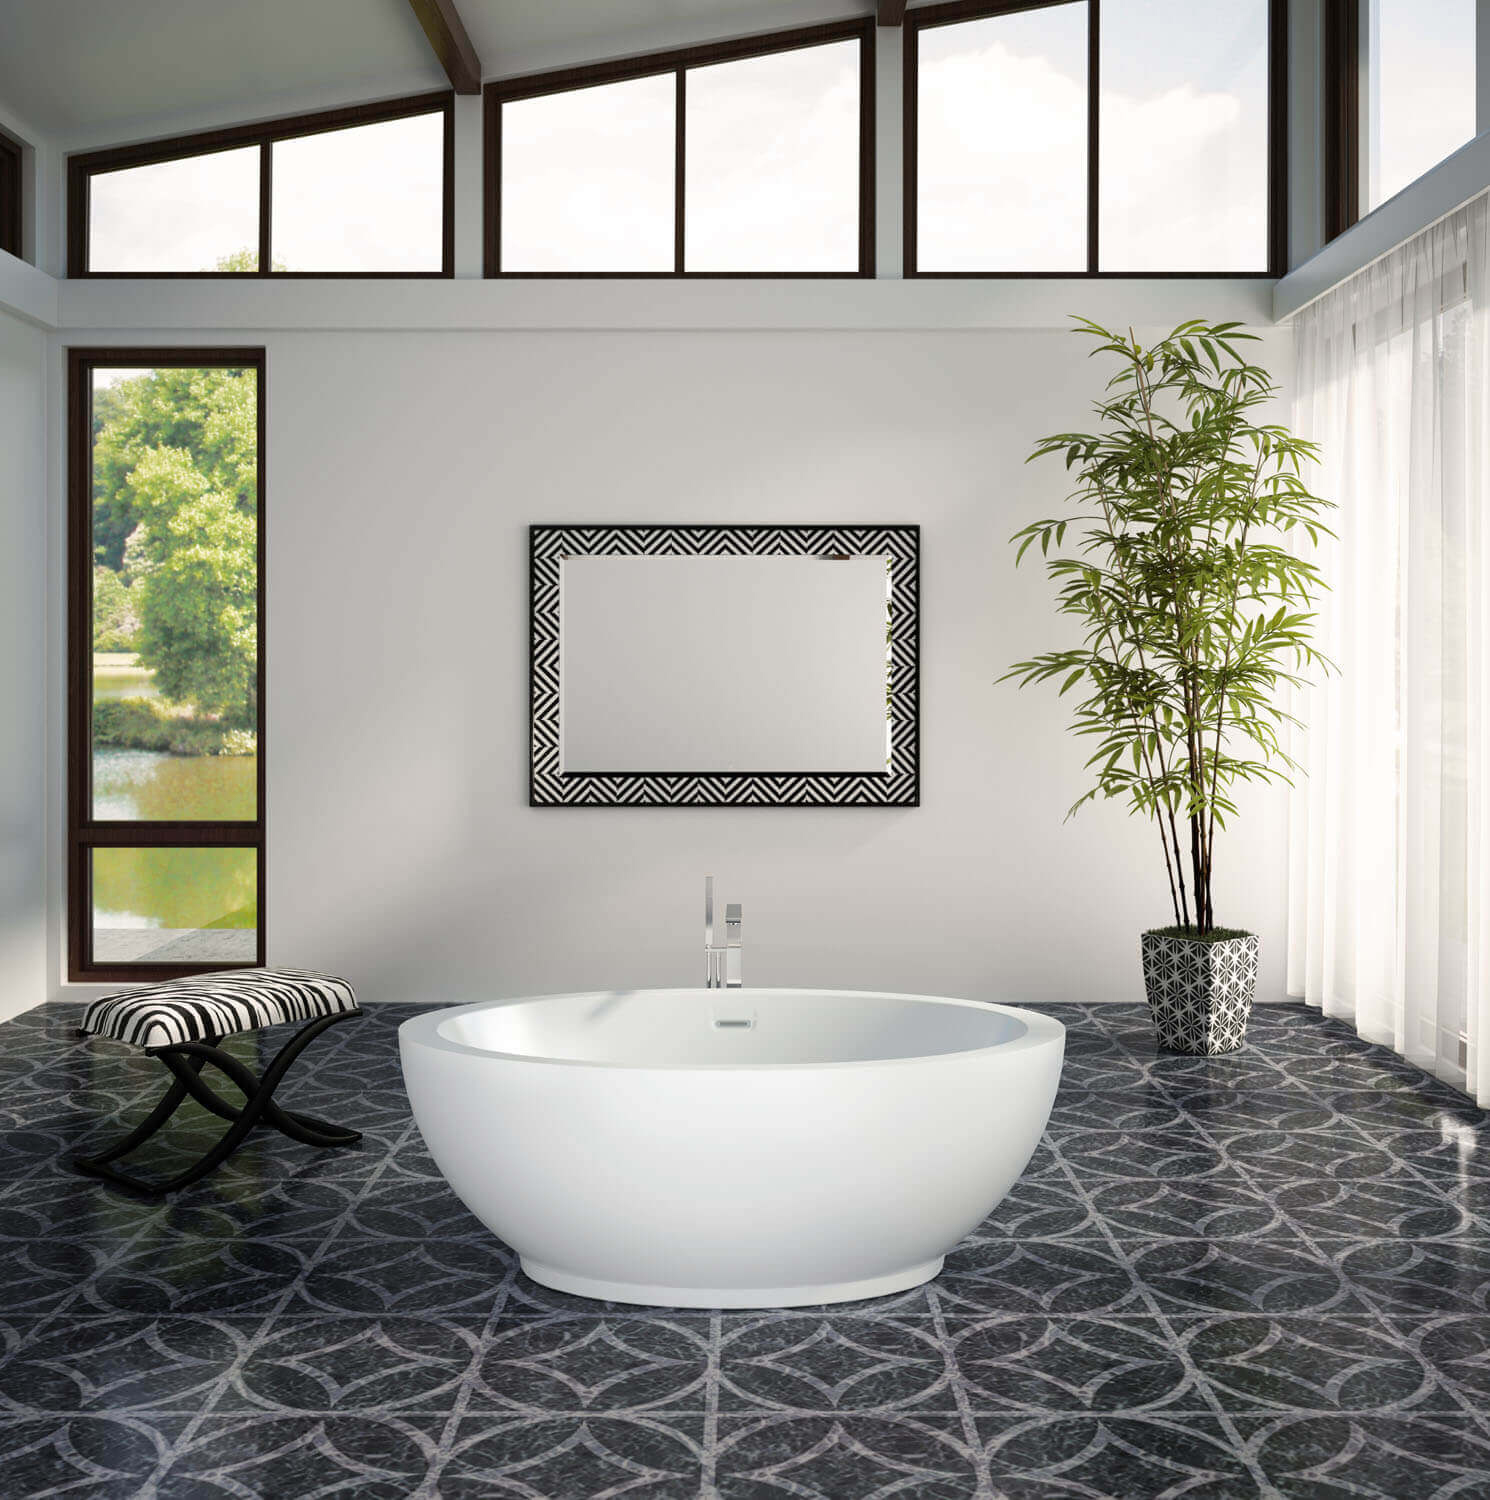 OPALIA 6839 Centered Ellipse air jet bathtub for your modern bathroom